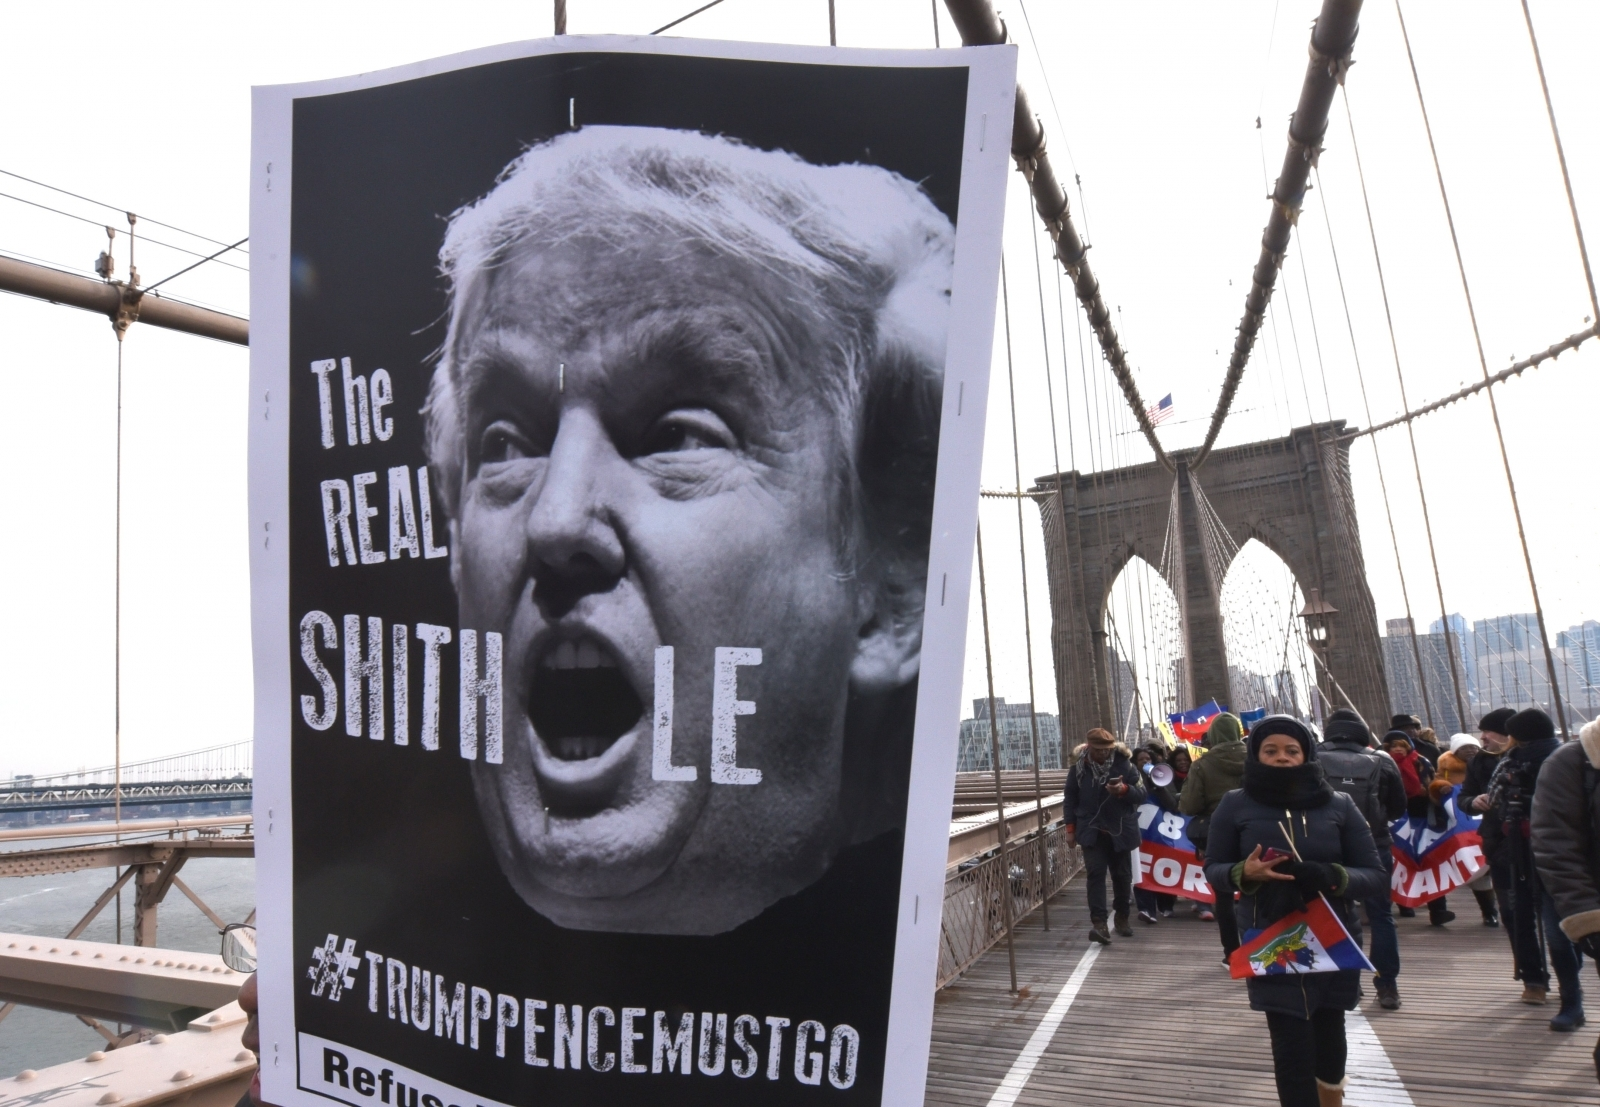 Protesters march across the Brooklyn Bridge over Trump's remarks, policies